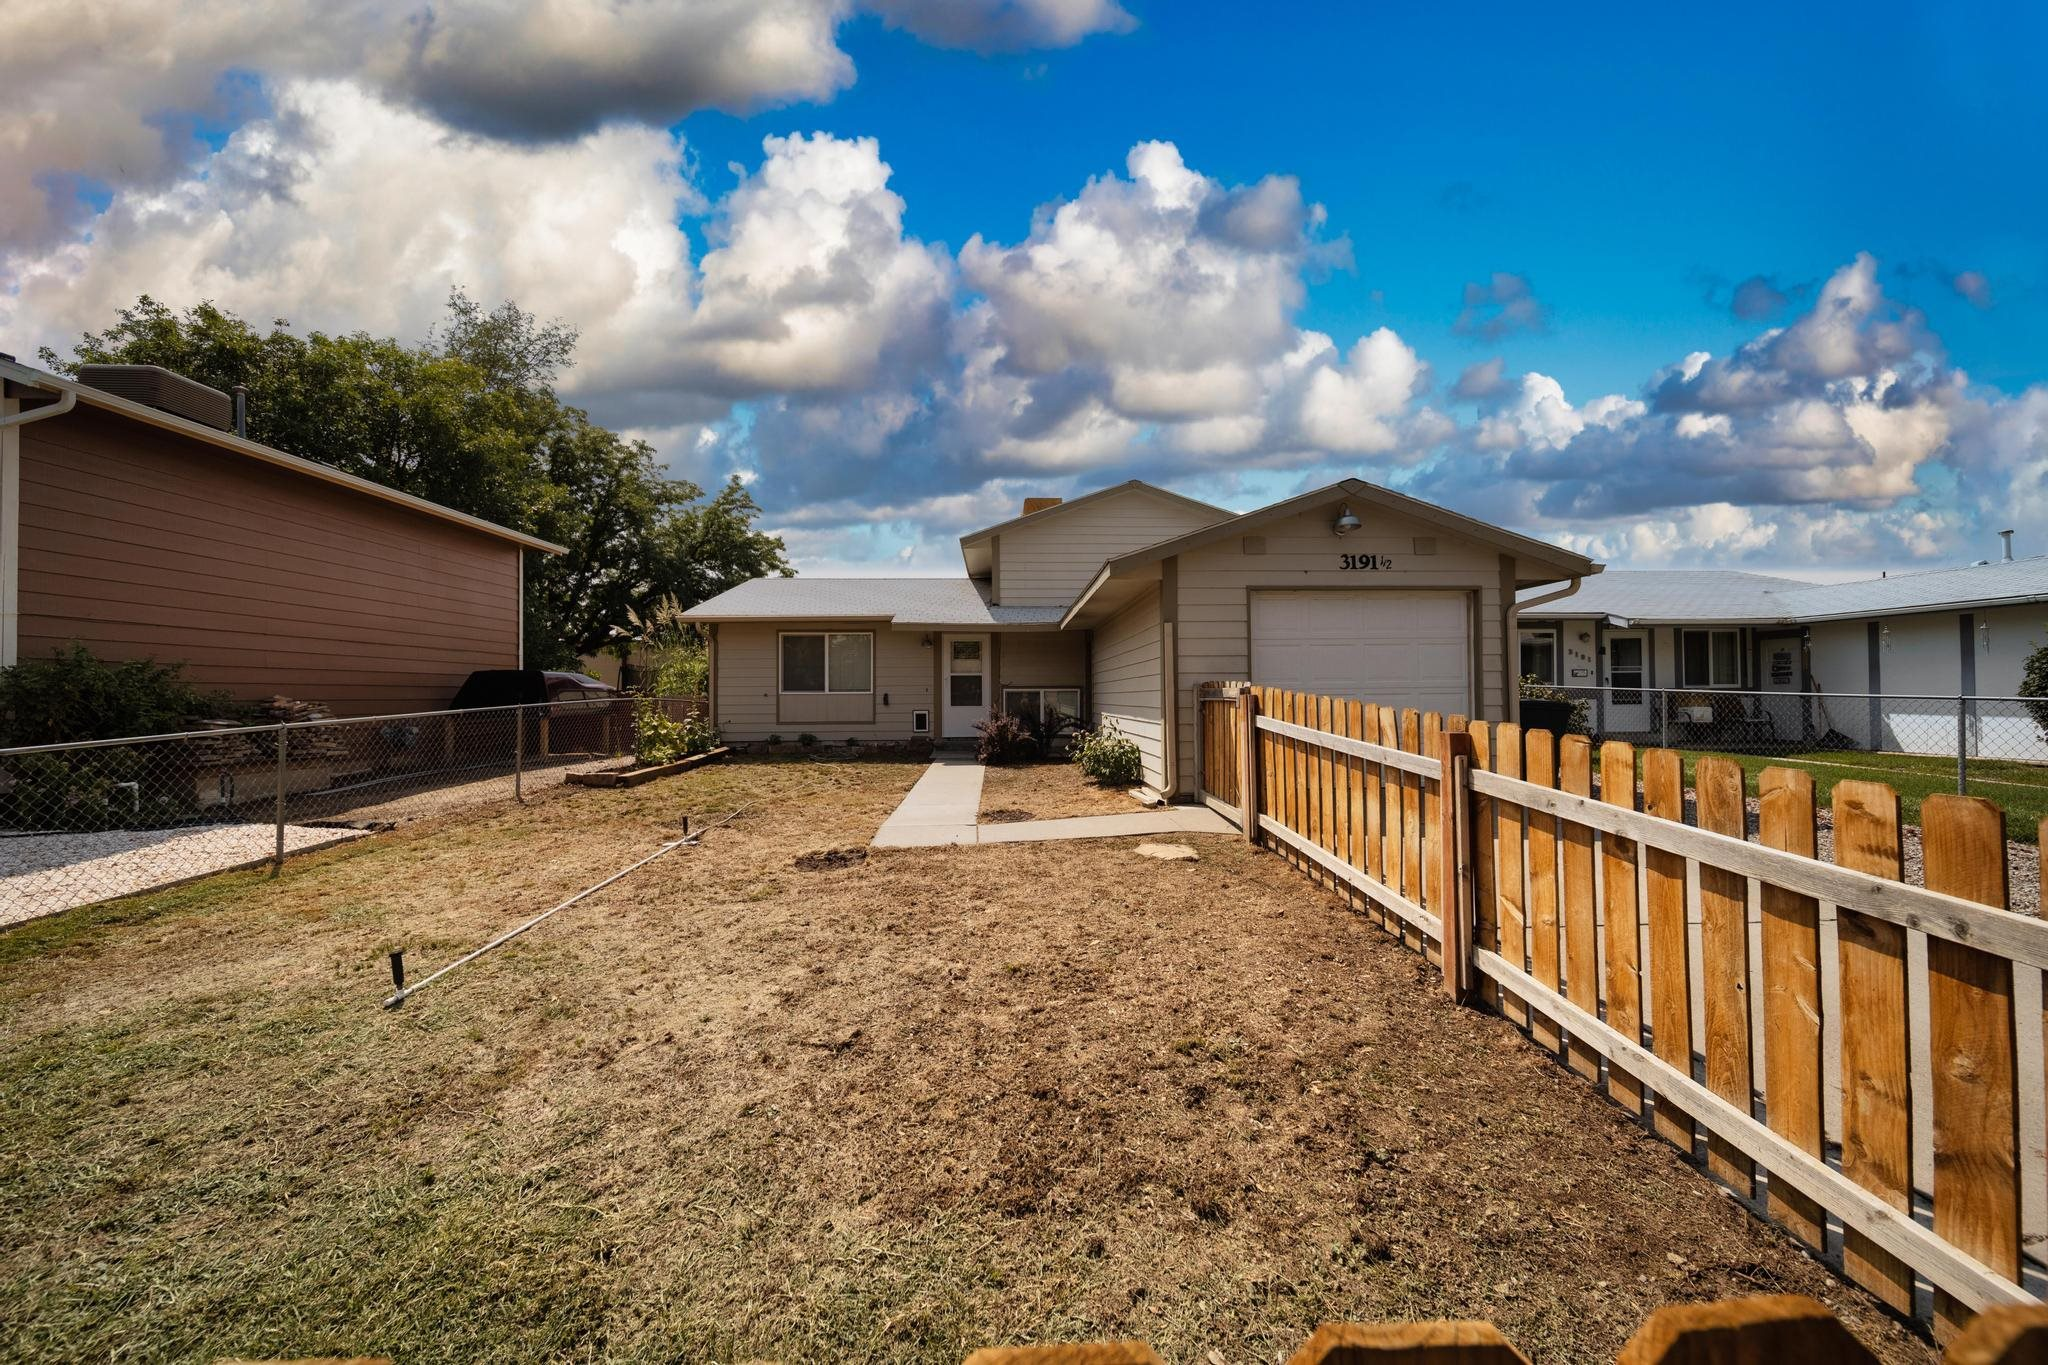 Quaint home with convenient location, ready for you to move in.  Fenced front and back yards.  Covered patio and a covered area for your barbeque.  Ideal floor plan with 2 bedrooms and 1 bath upstairs and 1 bedroom and 2nd bath downstairs with a family room, gives everyone space to roam and hangout.  It even has a garage and new windows!  Come check it out!